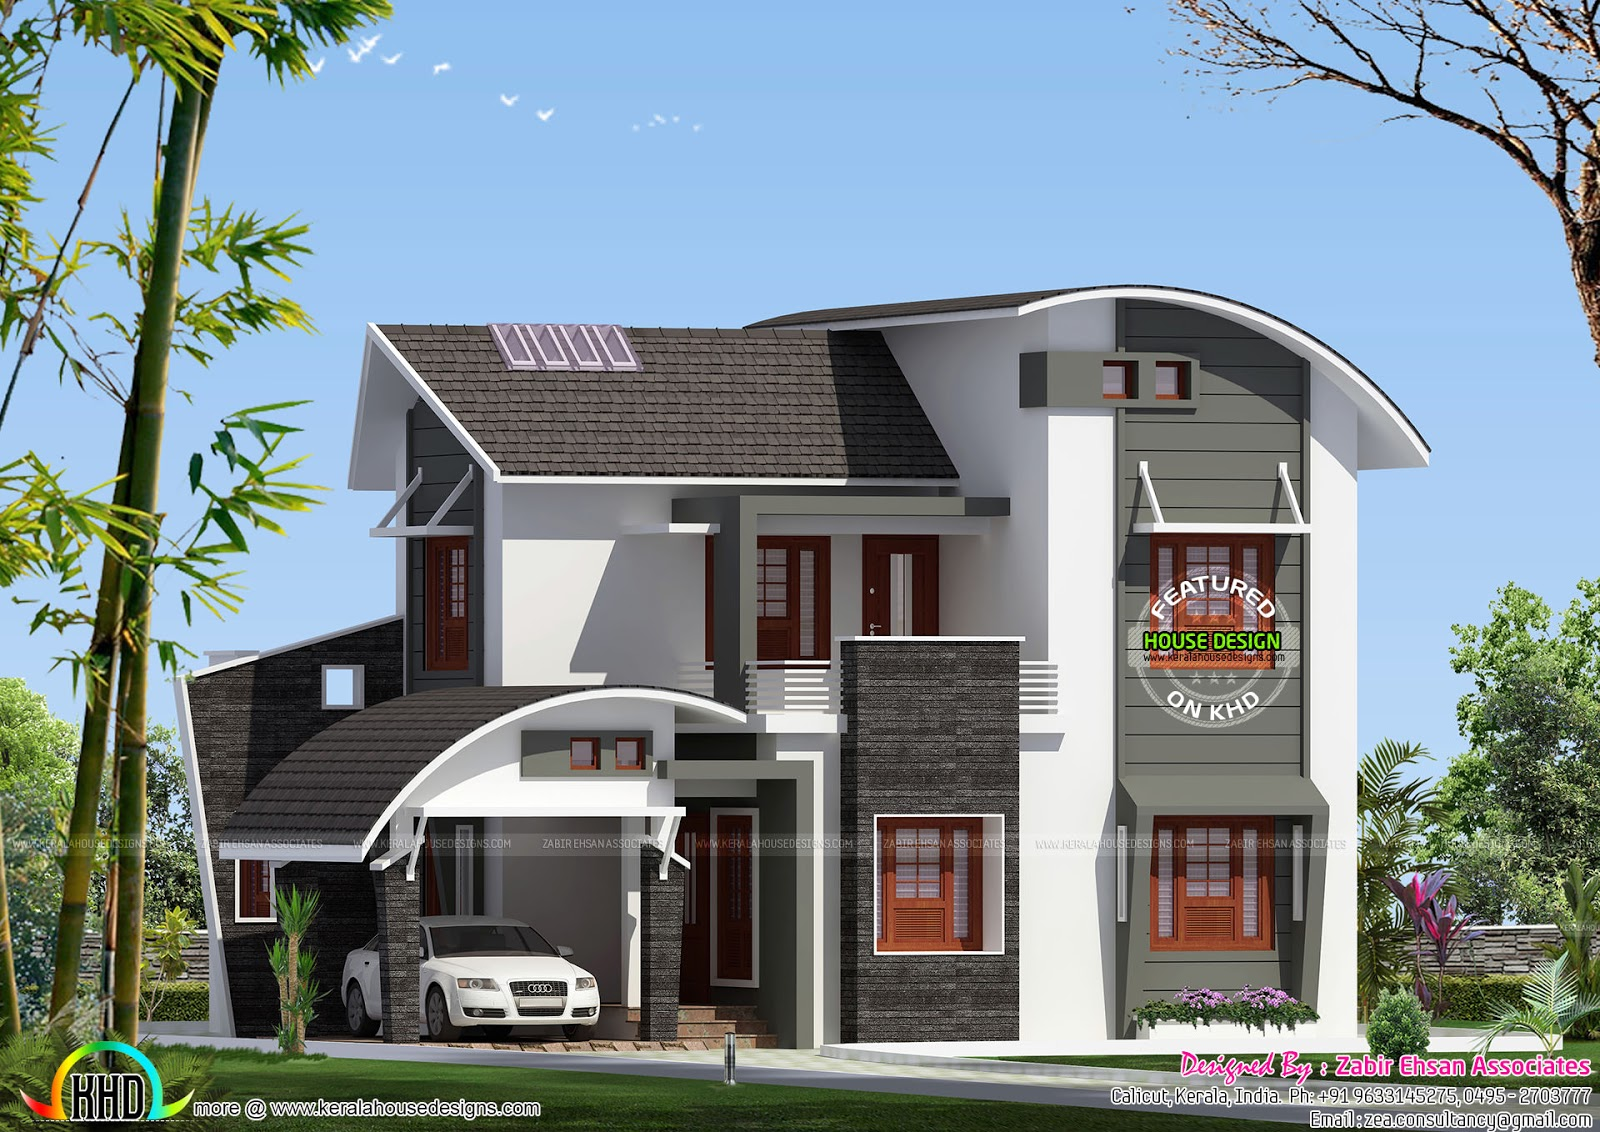 Charming 4 Bedroom Curved Roof Mix Contemporary Home Part - 10: 1775 Sq-ft Modern Mix Roof Home